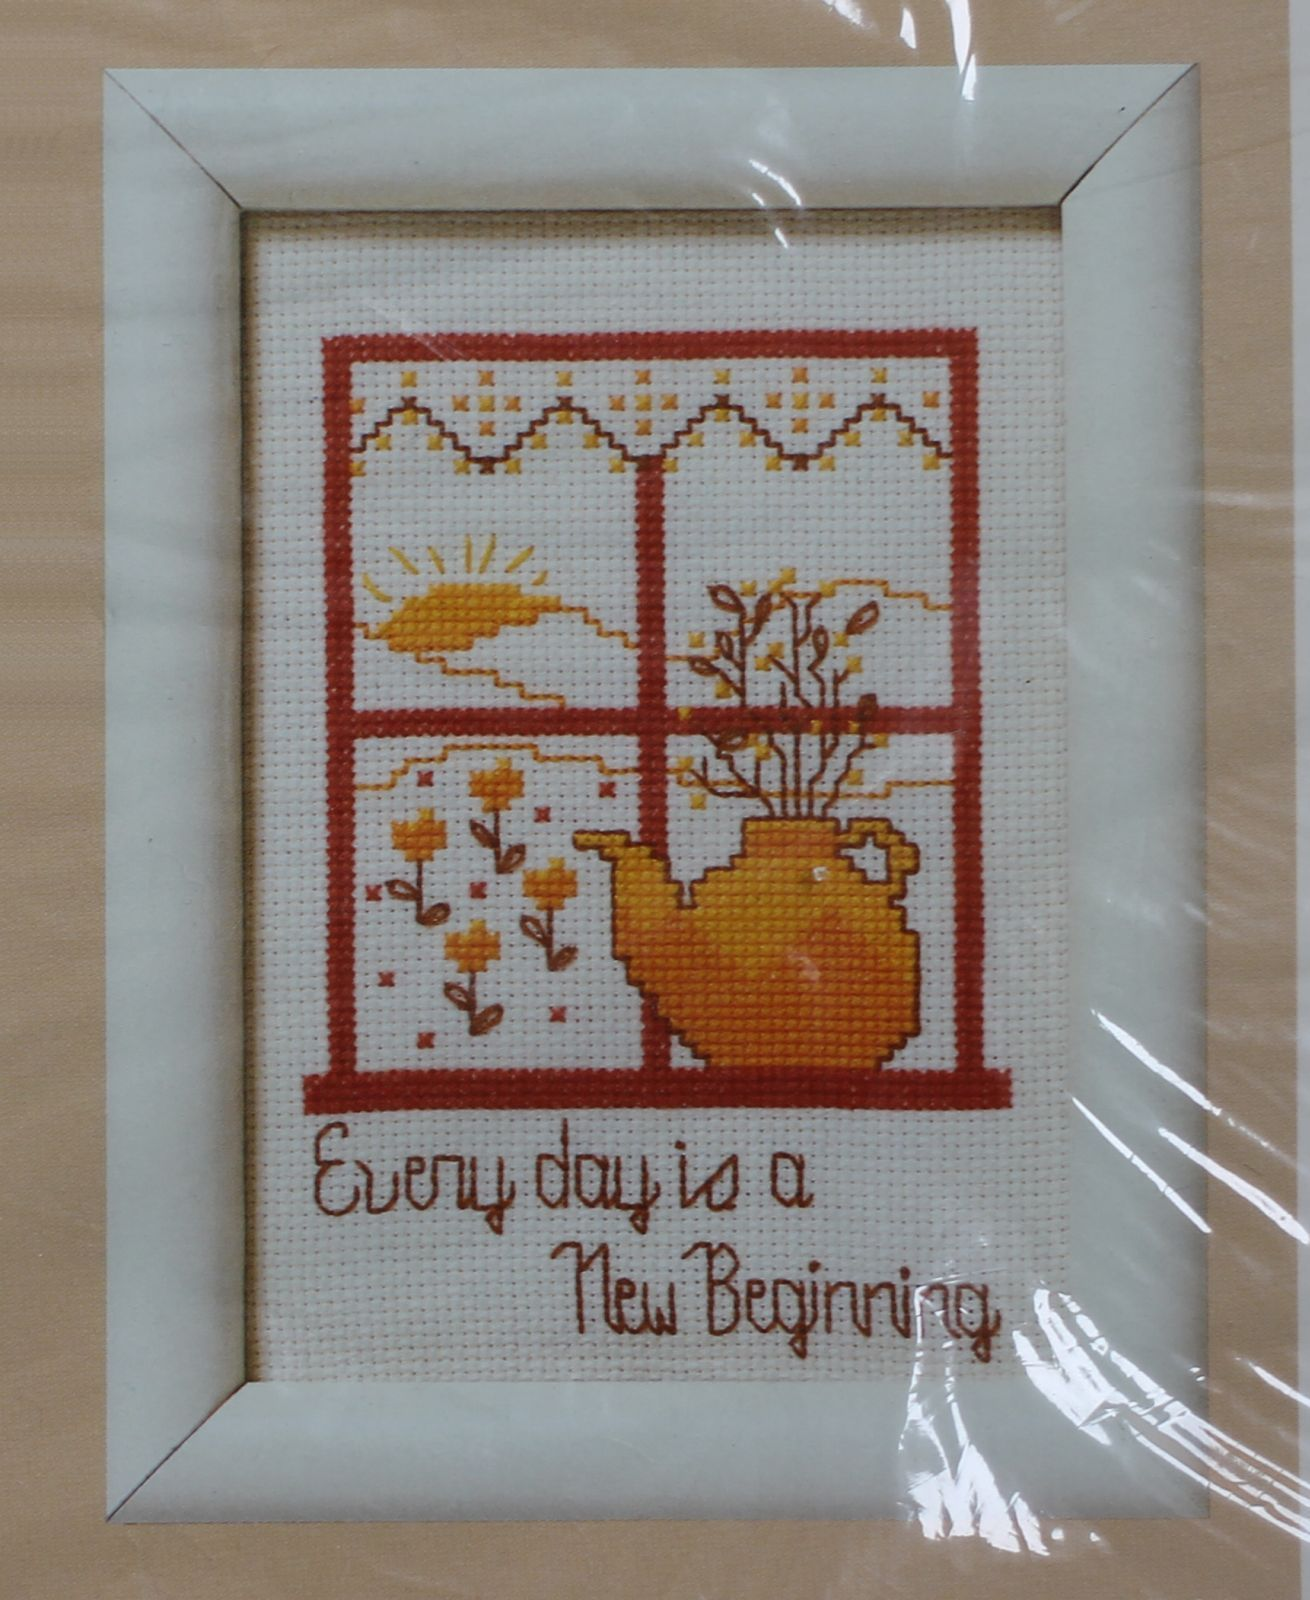 Primary image for 1987 Creative Circle Counted Cross Stitch Every Day Is A New Beginning KIT 5 x 7